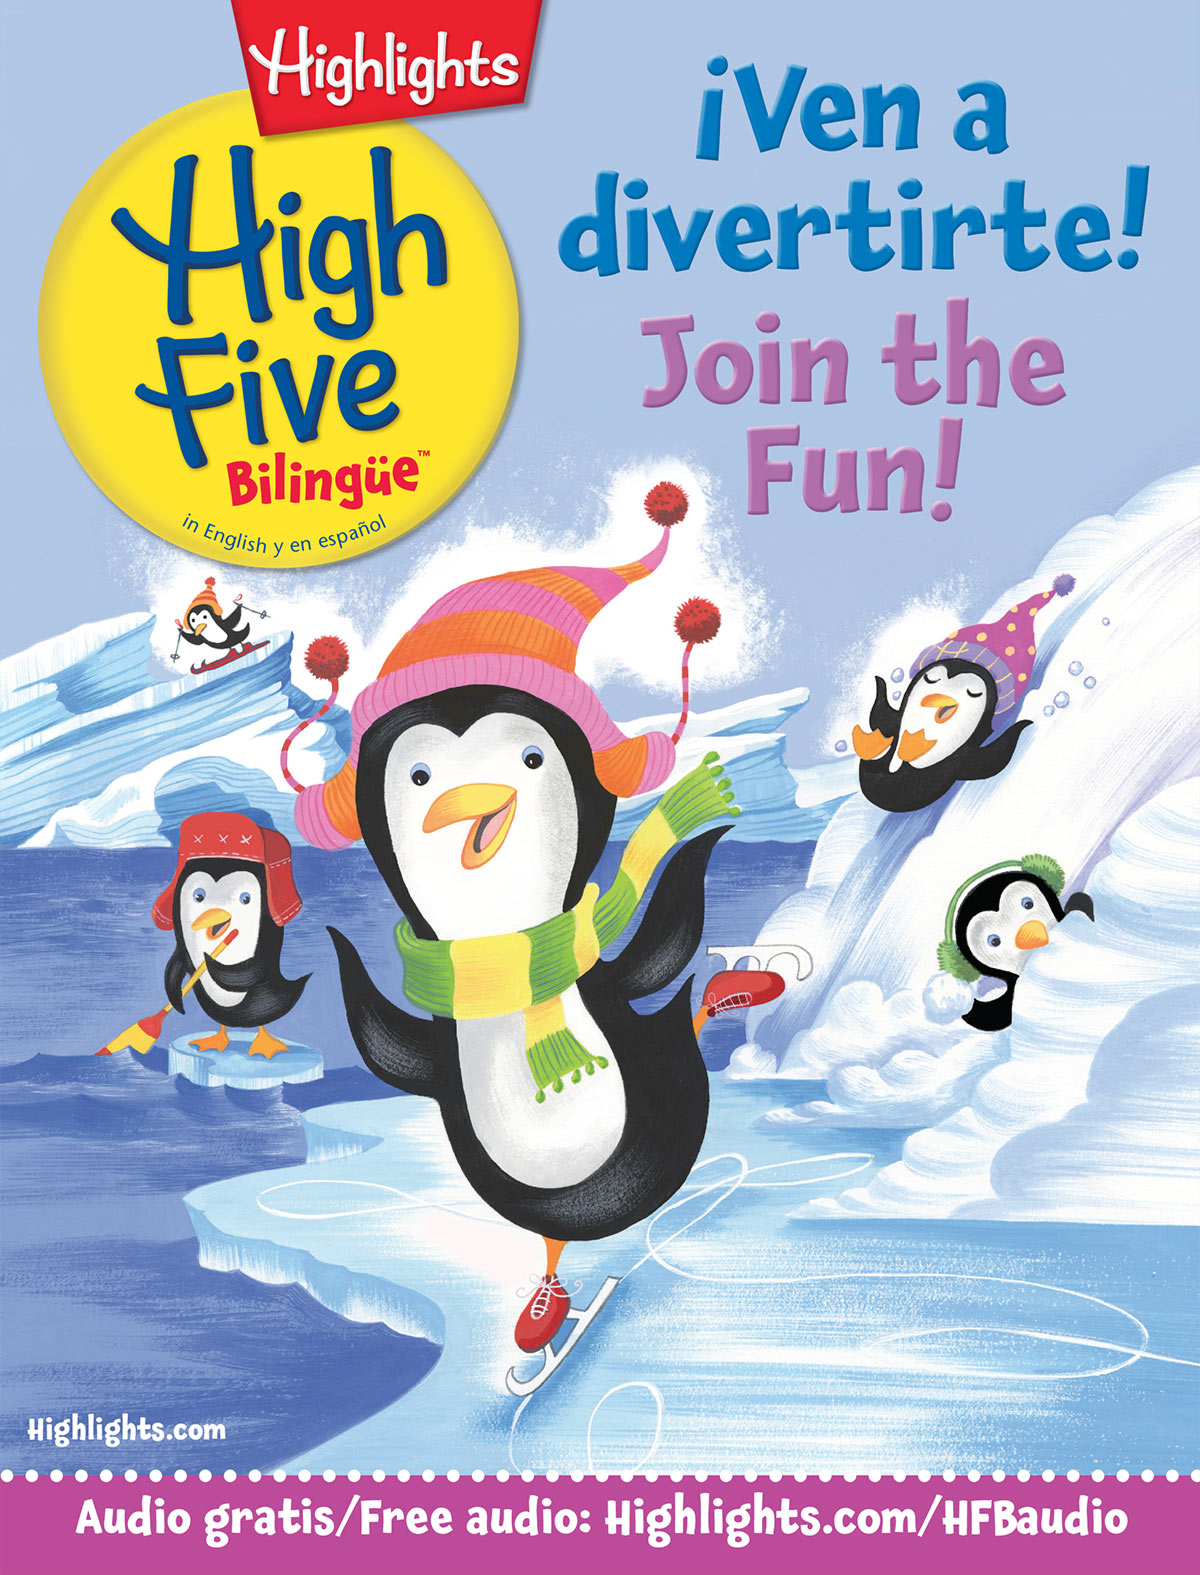 High Five Bilingüe™ is the perfect magazine in English and Spanish for kids